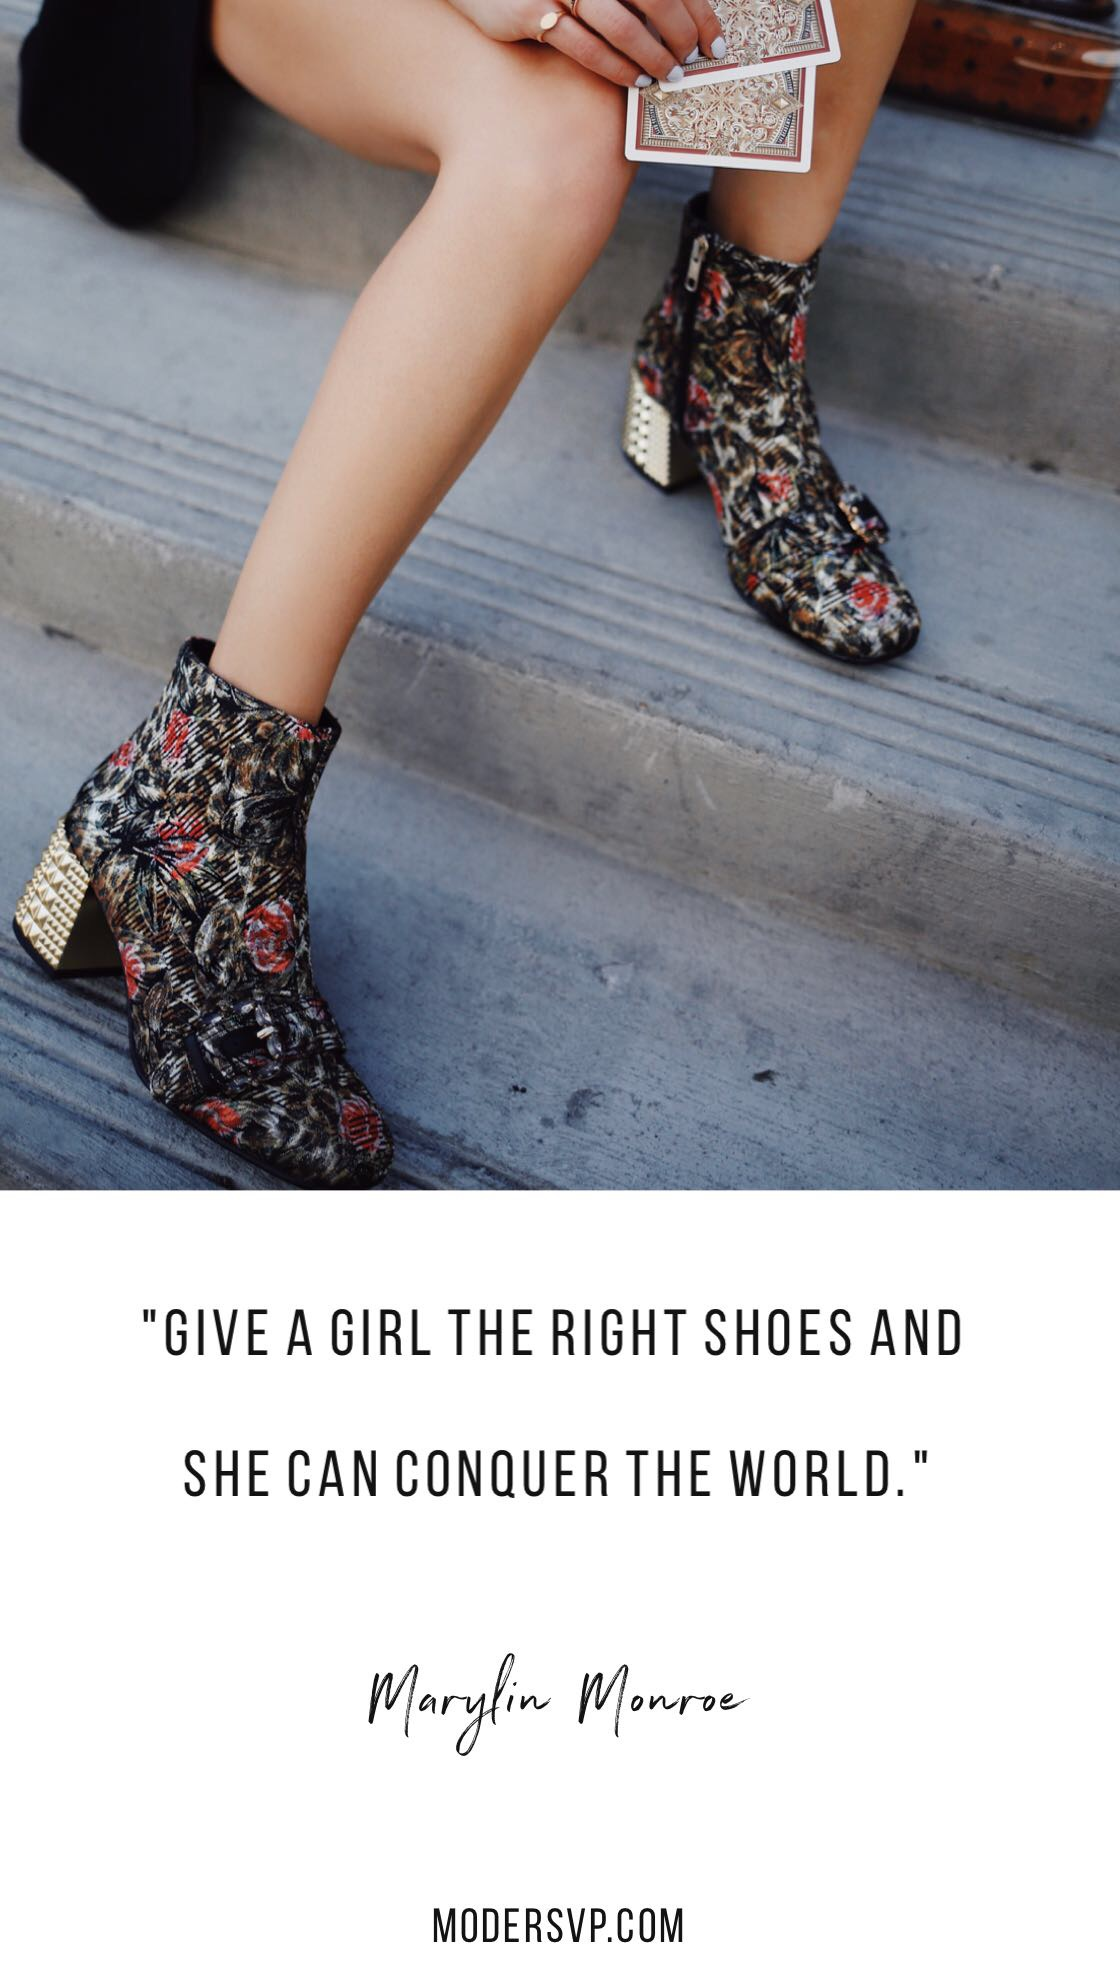 "Best Style quotes - Inspirational Fashion Quotes -""Give a girl the right shoes and she can conquer the world."" Marylin Monroe - Read more style quotes from Anna Wintour, Diane Von Furstenberg, Coco Chanel and other fashion designers and style icons on Houseofcomil.com"